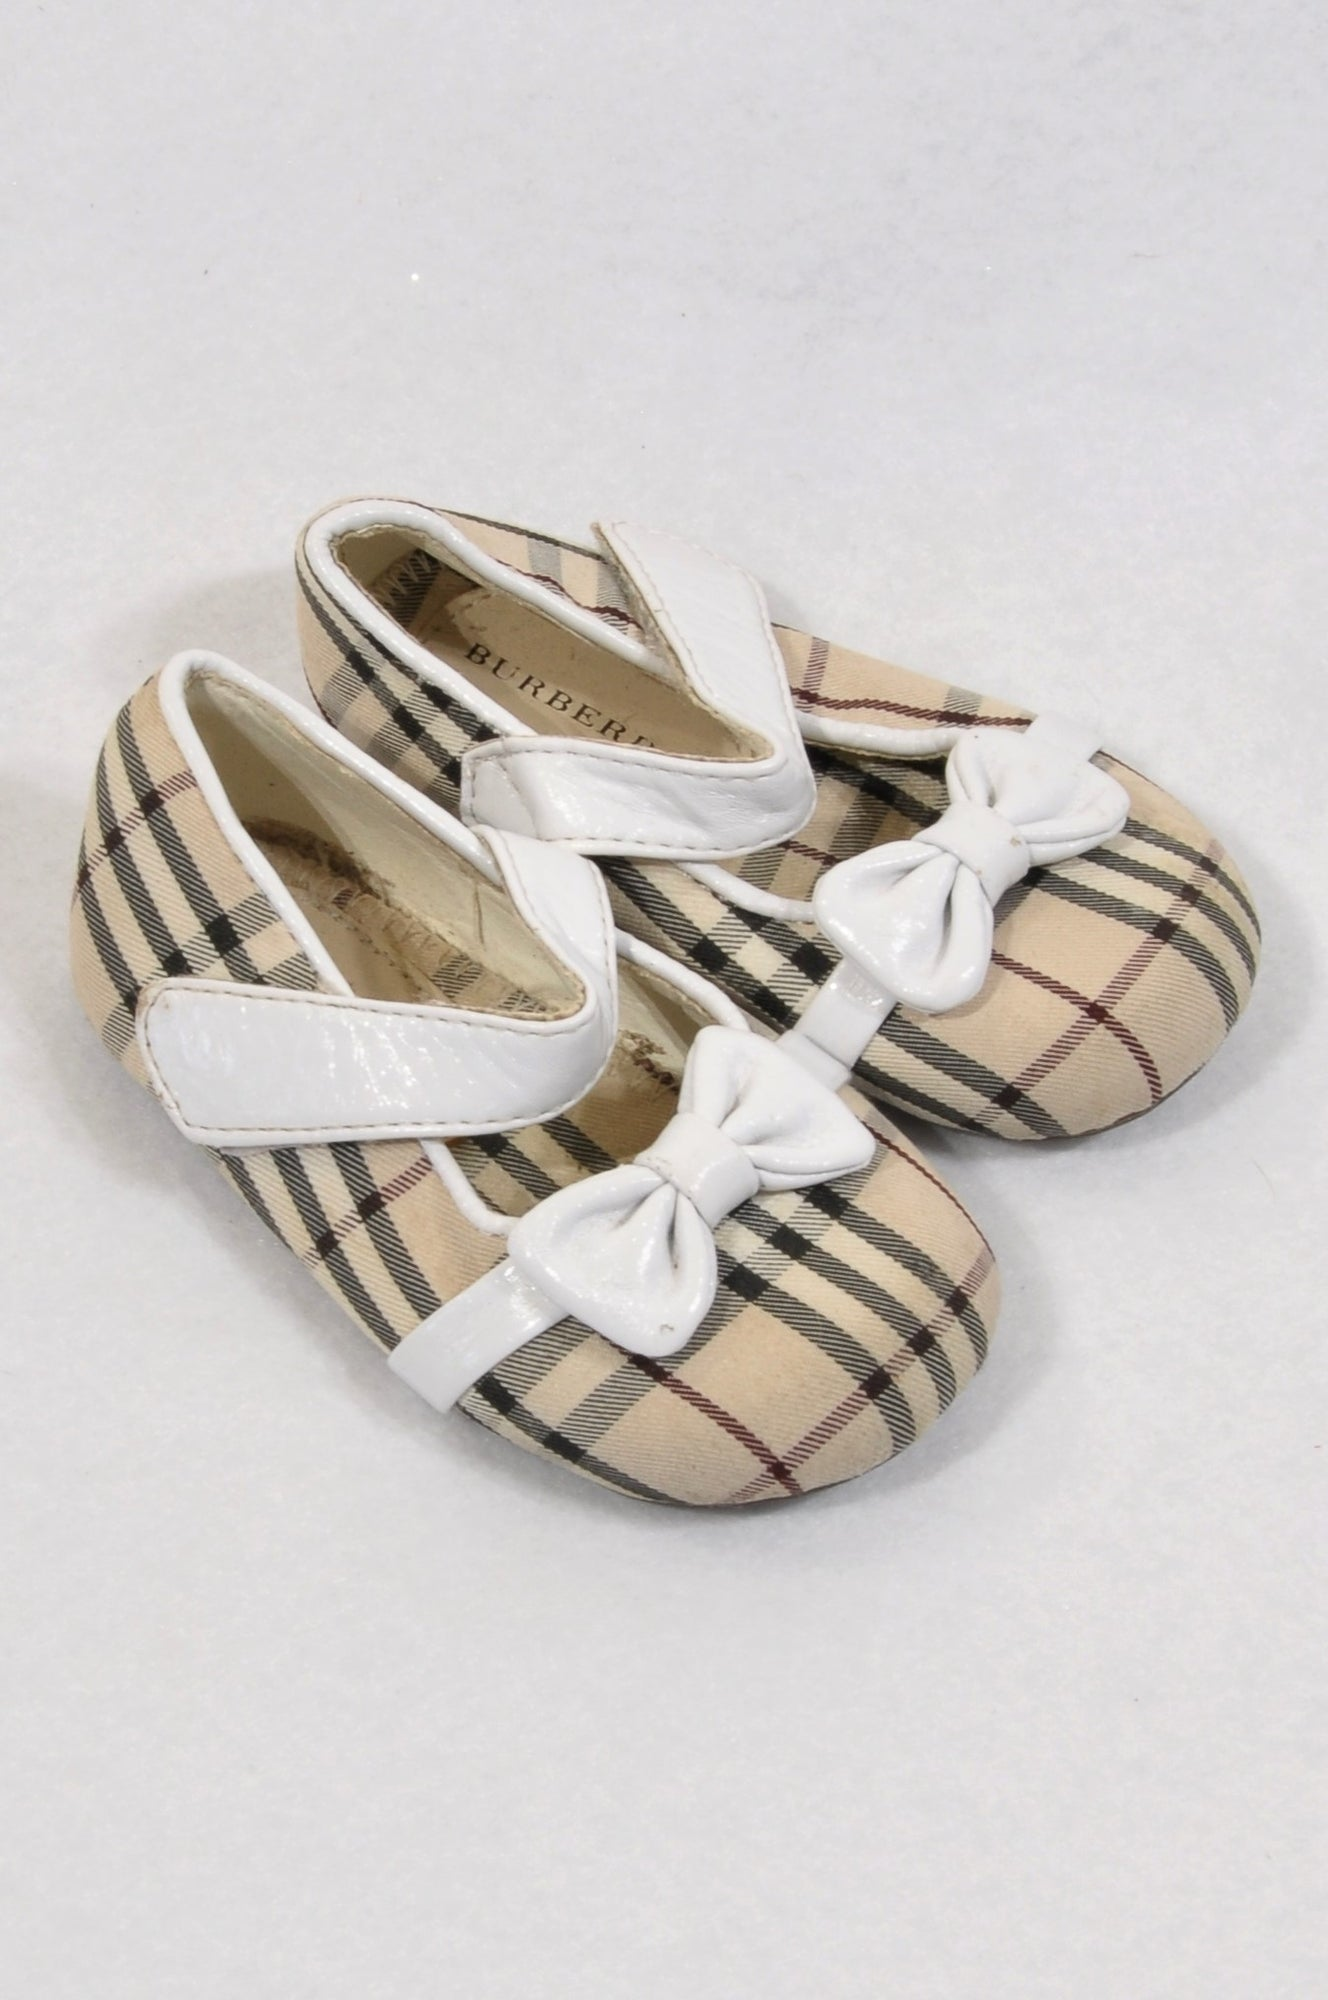 Burberry Size 3 Beige Plaid Mary Jane Shoes Girls 9-12 months